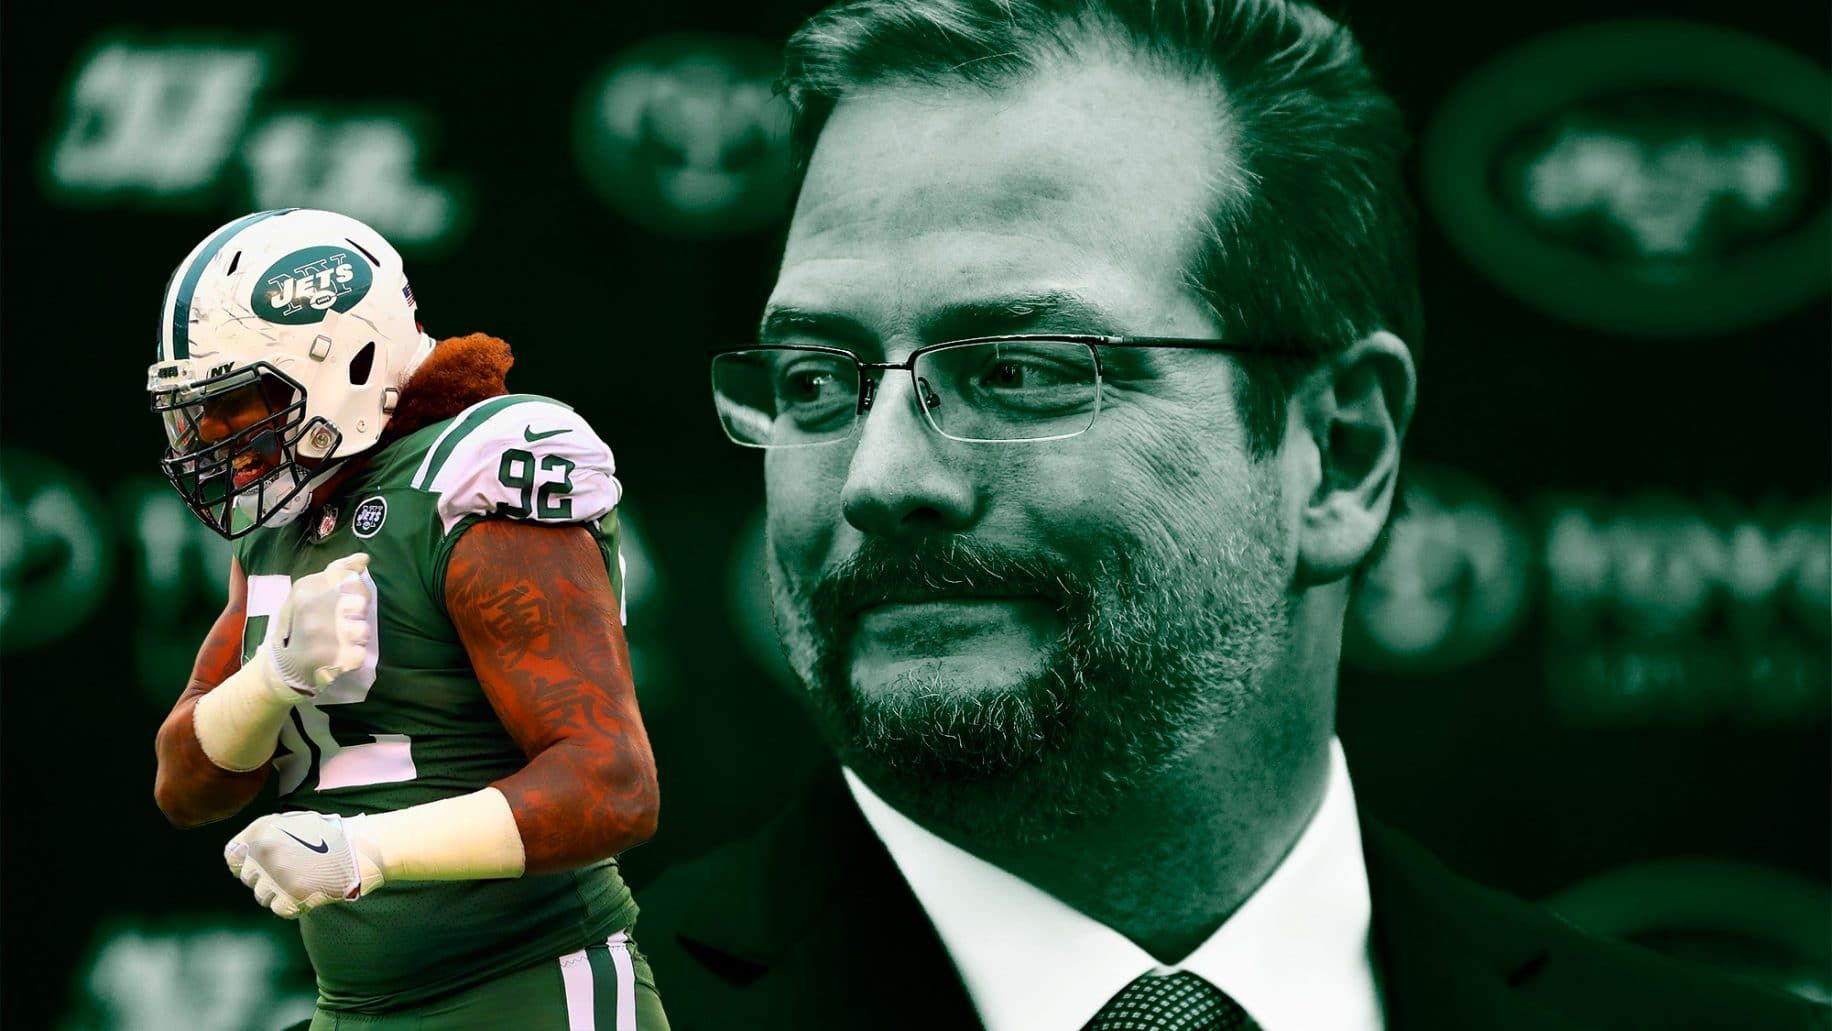 New York Jets General Managers Mike Maccagnan Inexplicably Dismisses The Defensive Line As A Non Positional Need On Monday It S New York Jets Tv Shows Sheldon